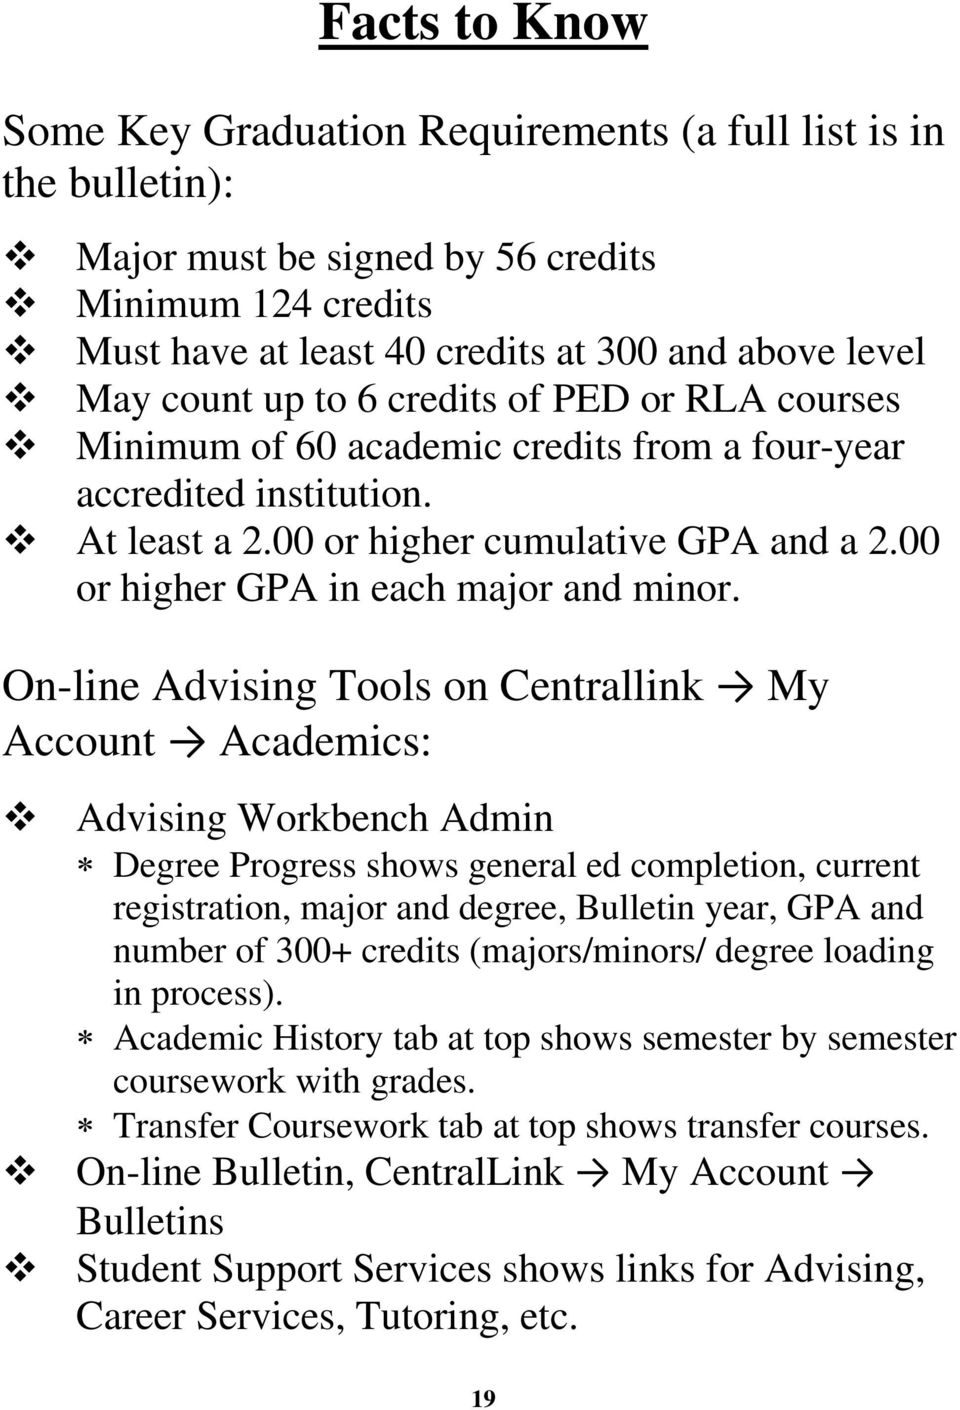 On-line Advising Tools on Centrallink My Account Academics: Advising Workbench Admin Degree Progress shows general ed completion, current registration, major and degree, Bulletin year, GPA and number